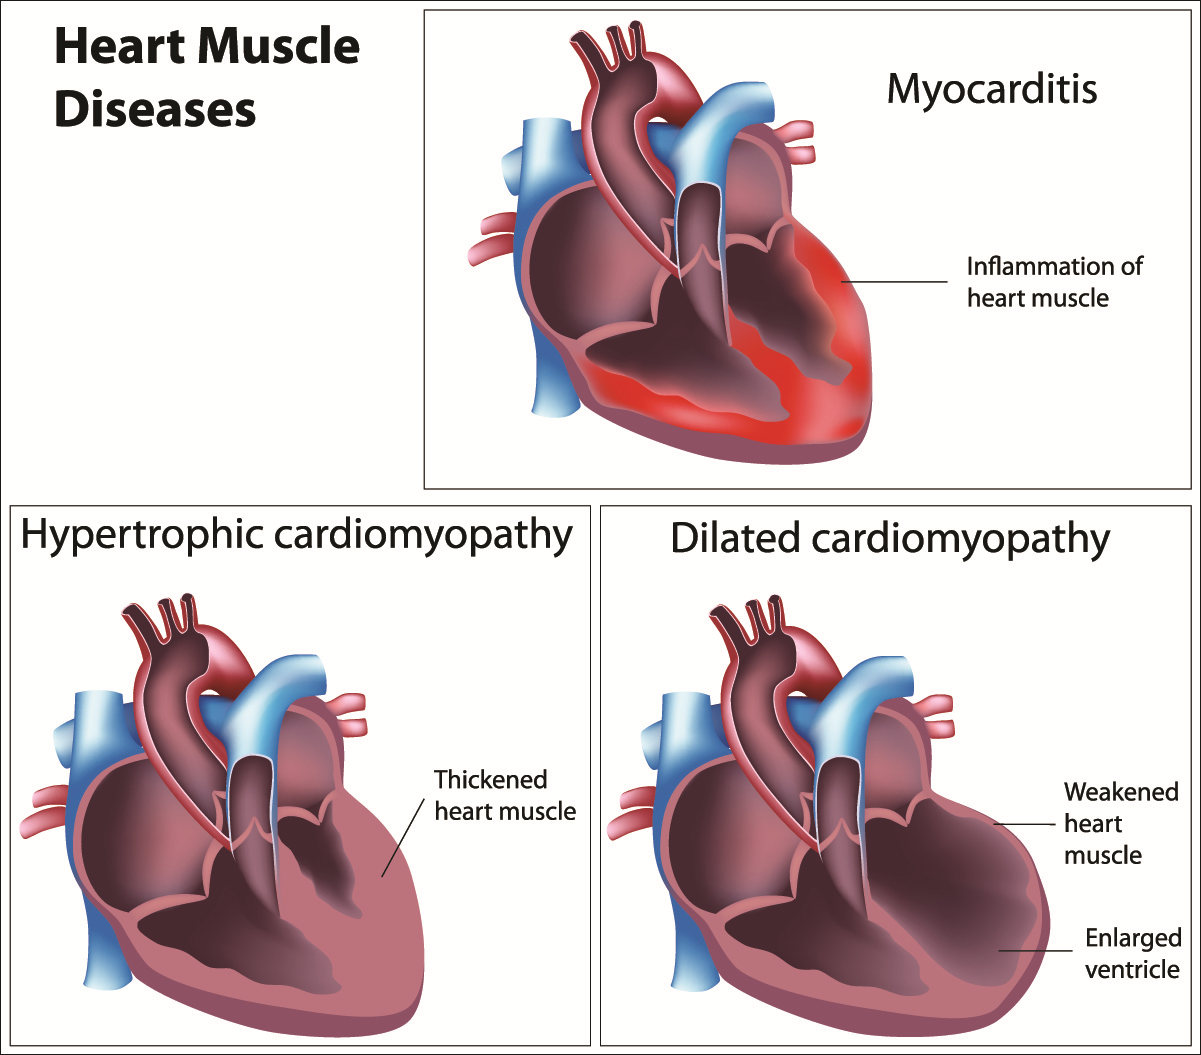 CARDIOMYOPATHY-diseases of the heart muscle